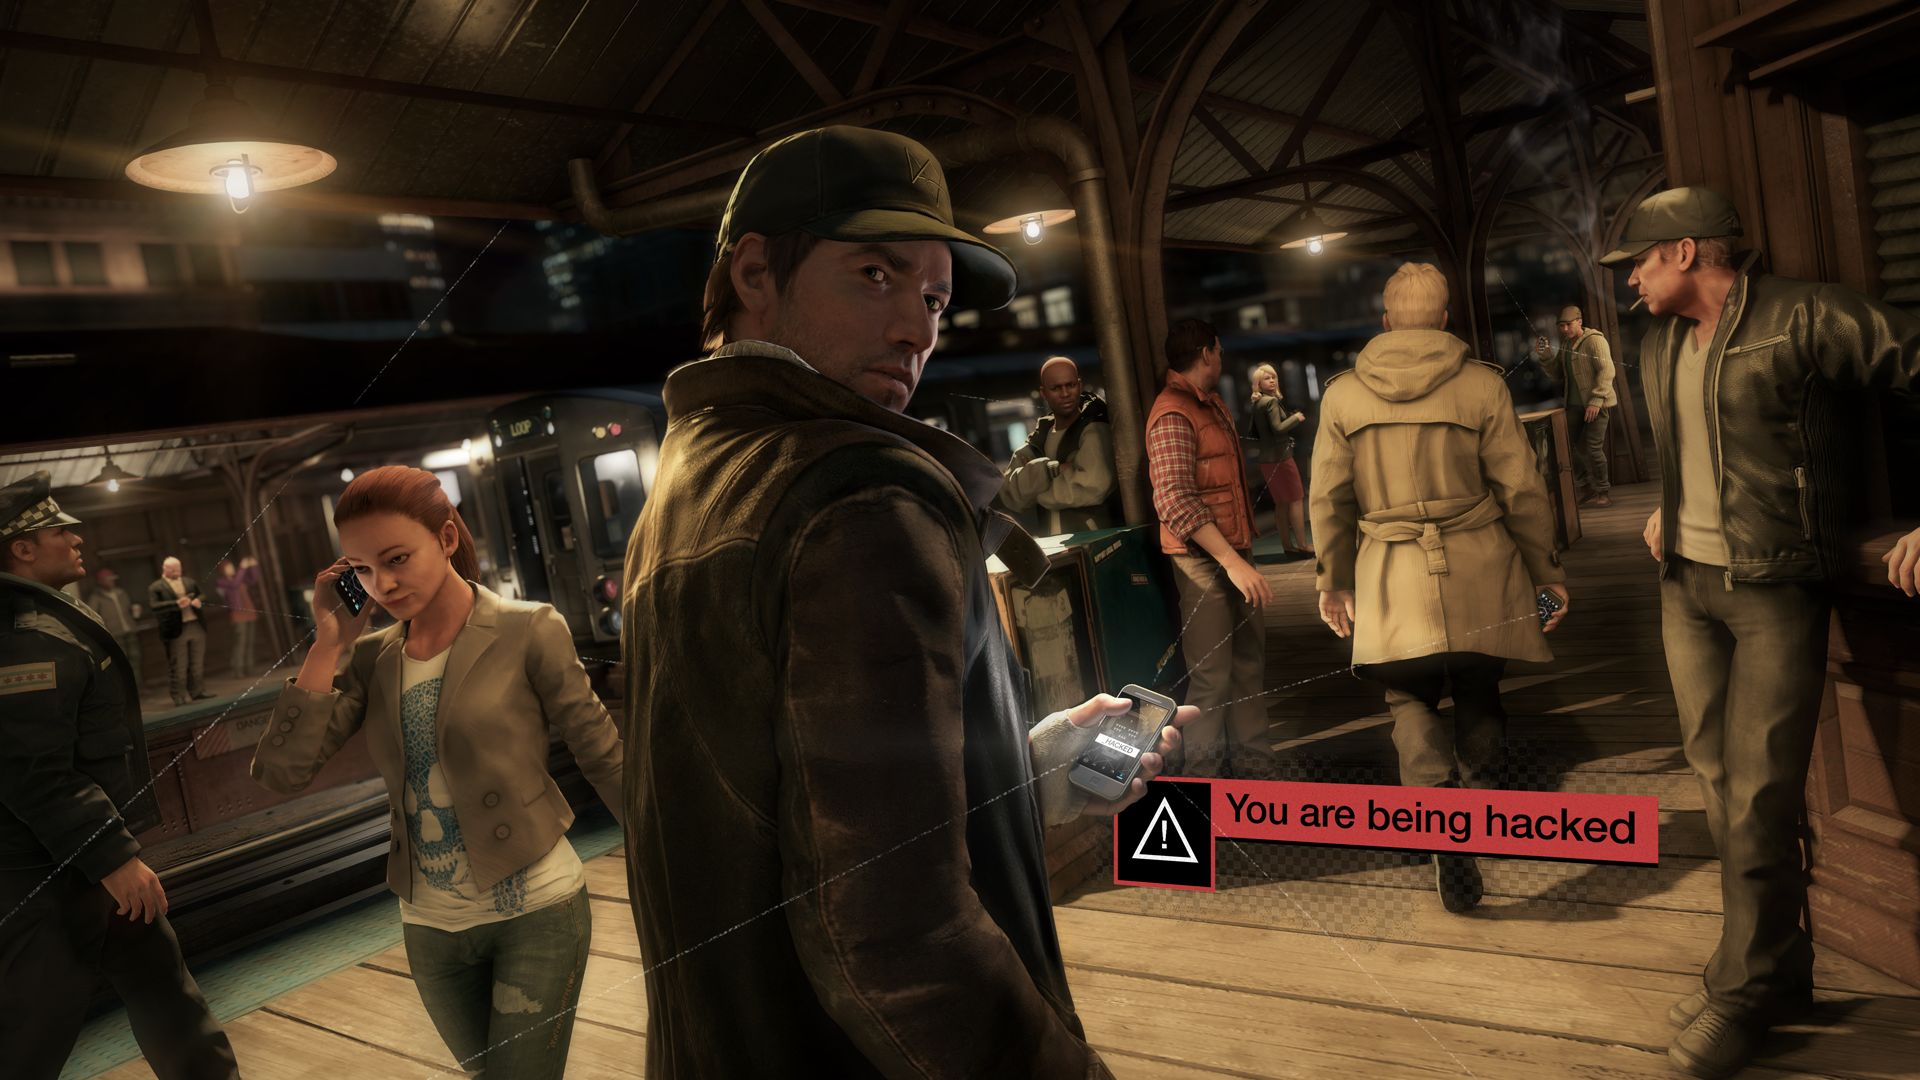 Watch Dogs bullshots